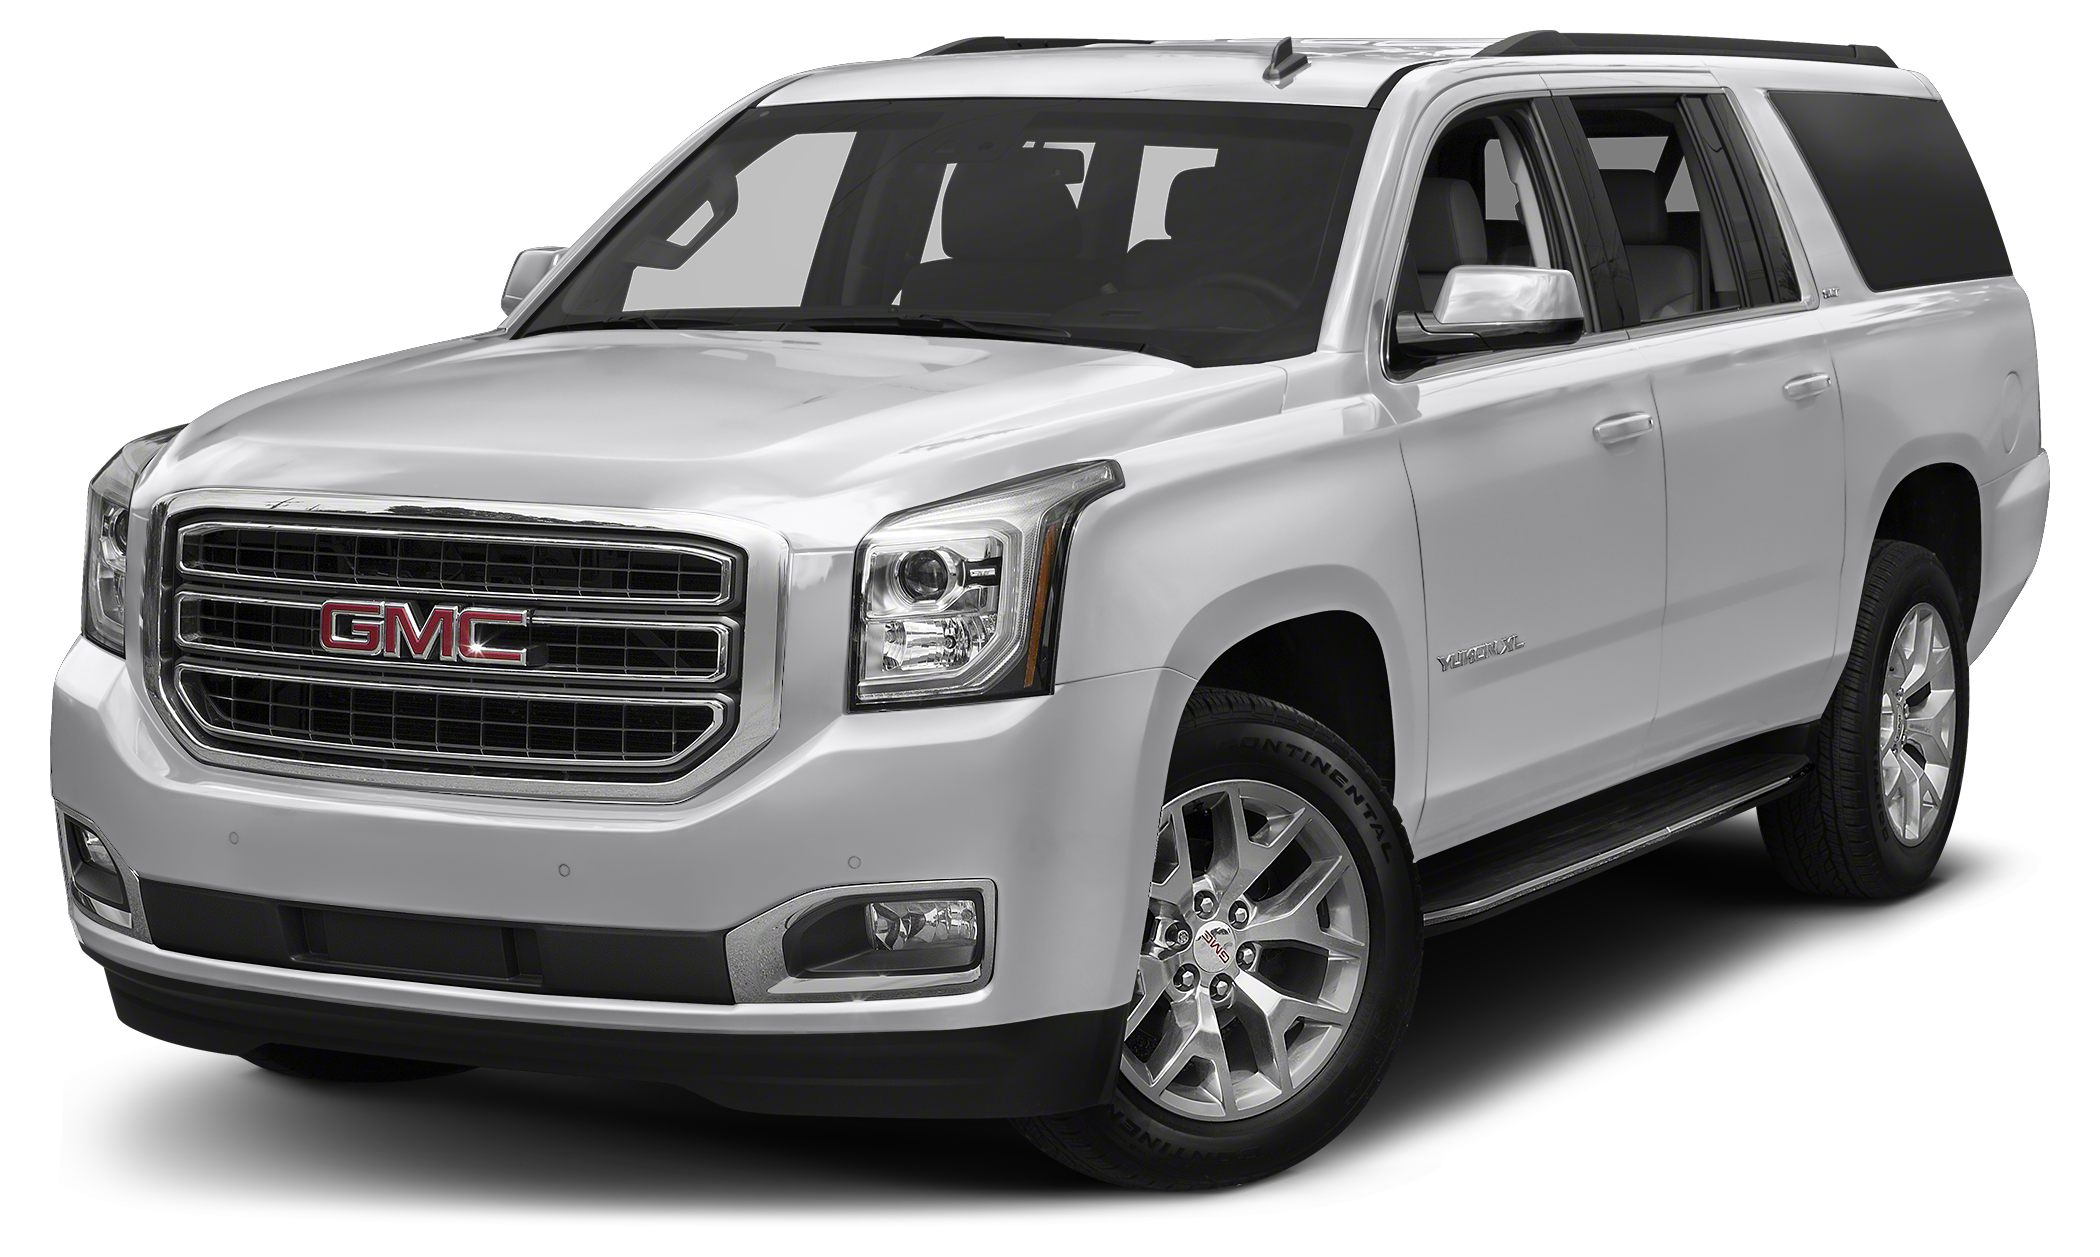 2017 GMC Yukon XL SLT Miles 5Color Quicksilver Metallic Stock GH298370 VIN 1GKS1GKC5HR298370